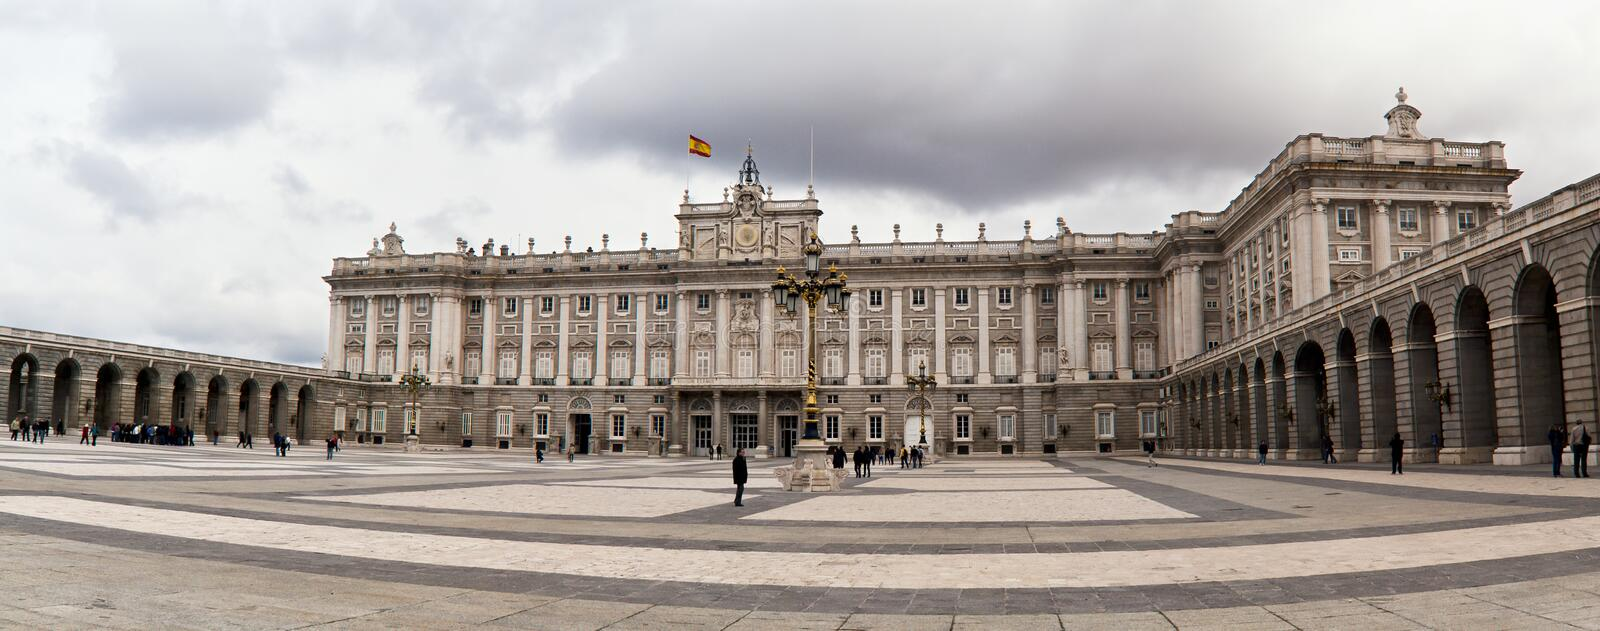 Download Royal Palace editorial image. Image of architecture, clouds - 25104100